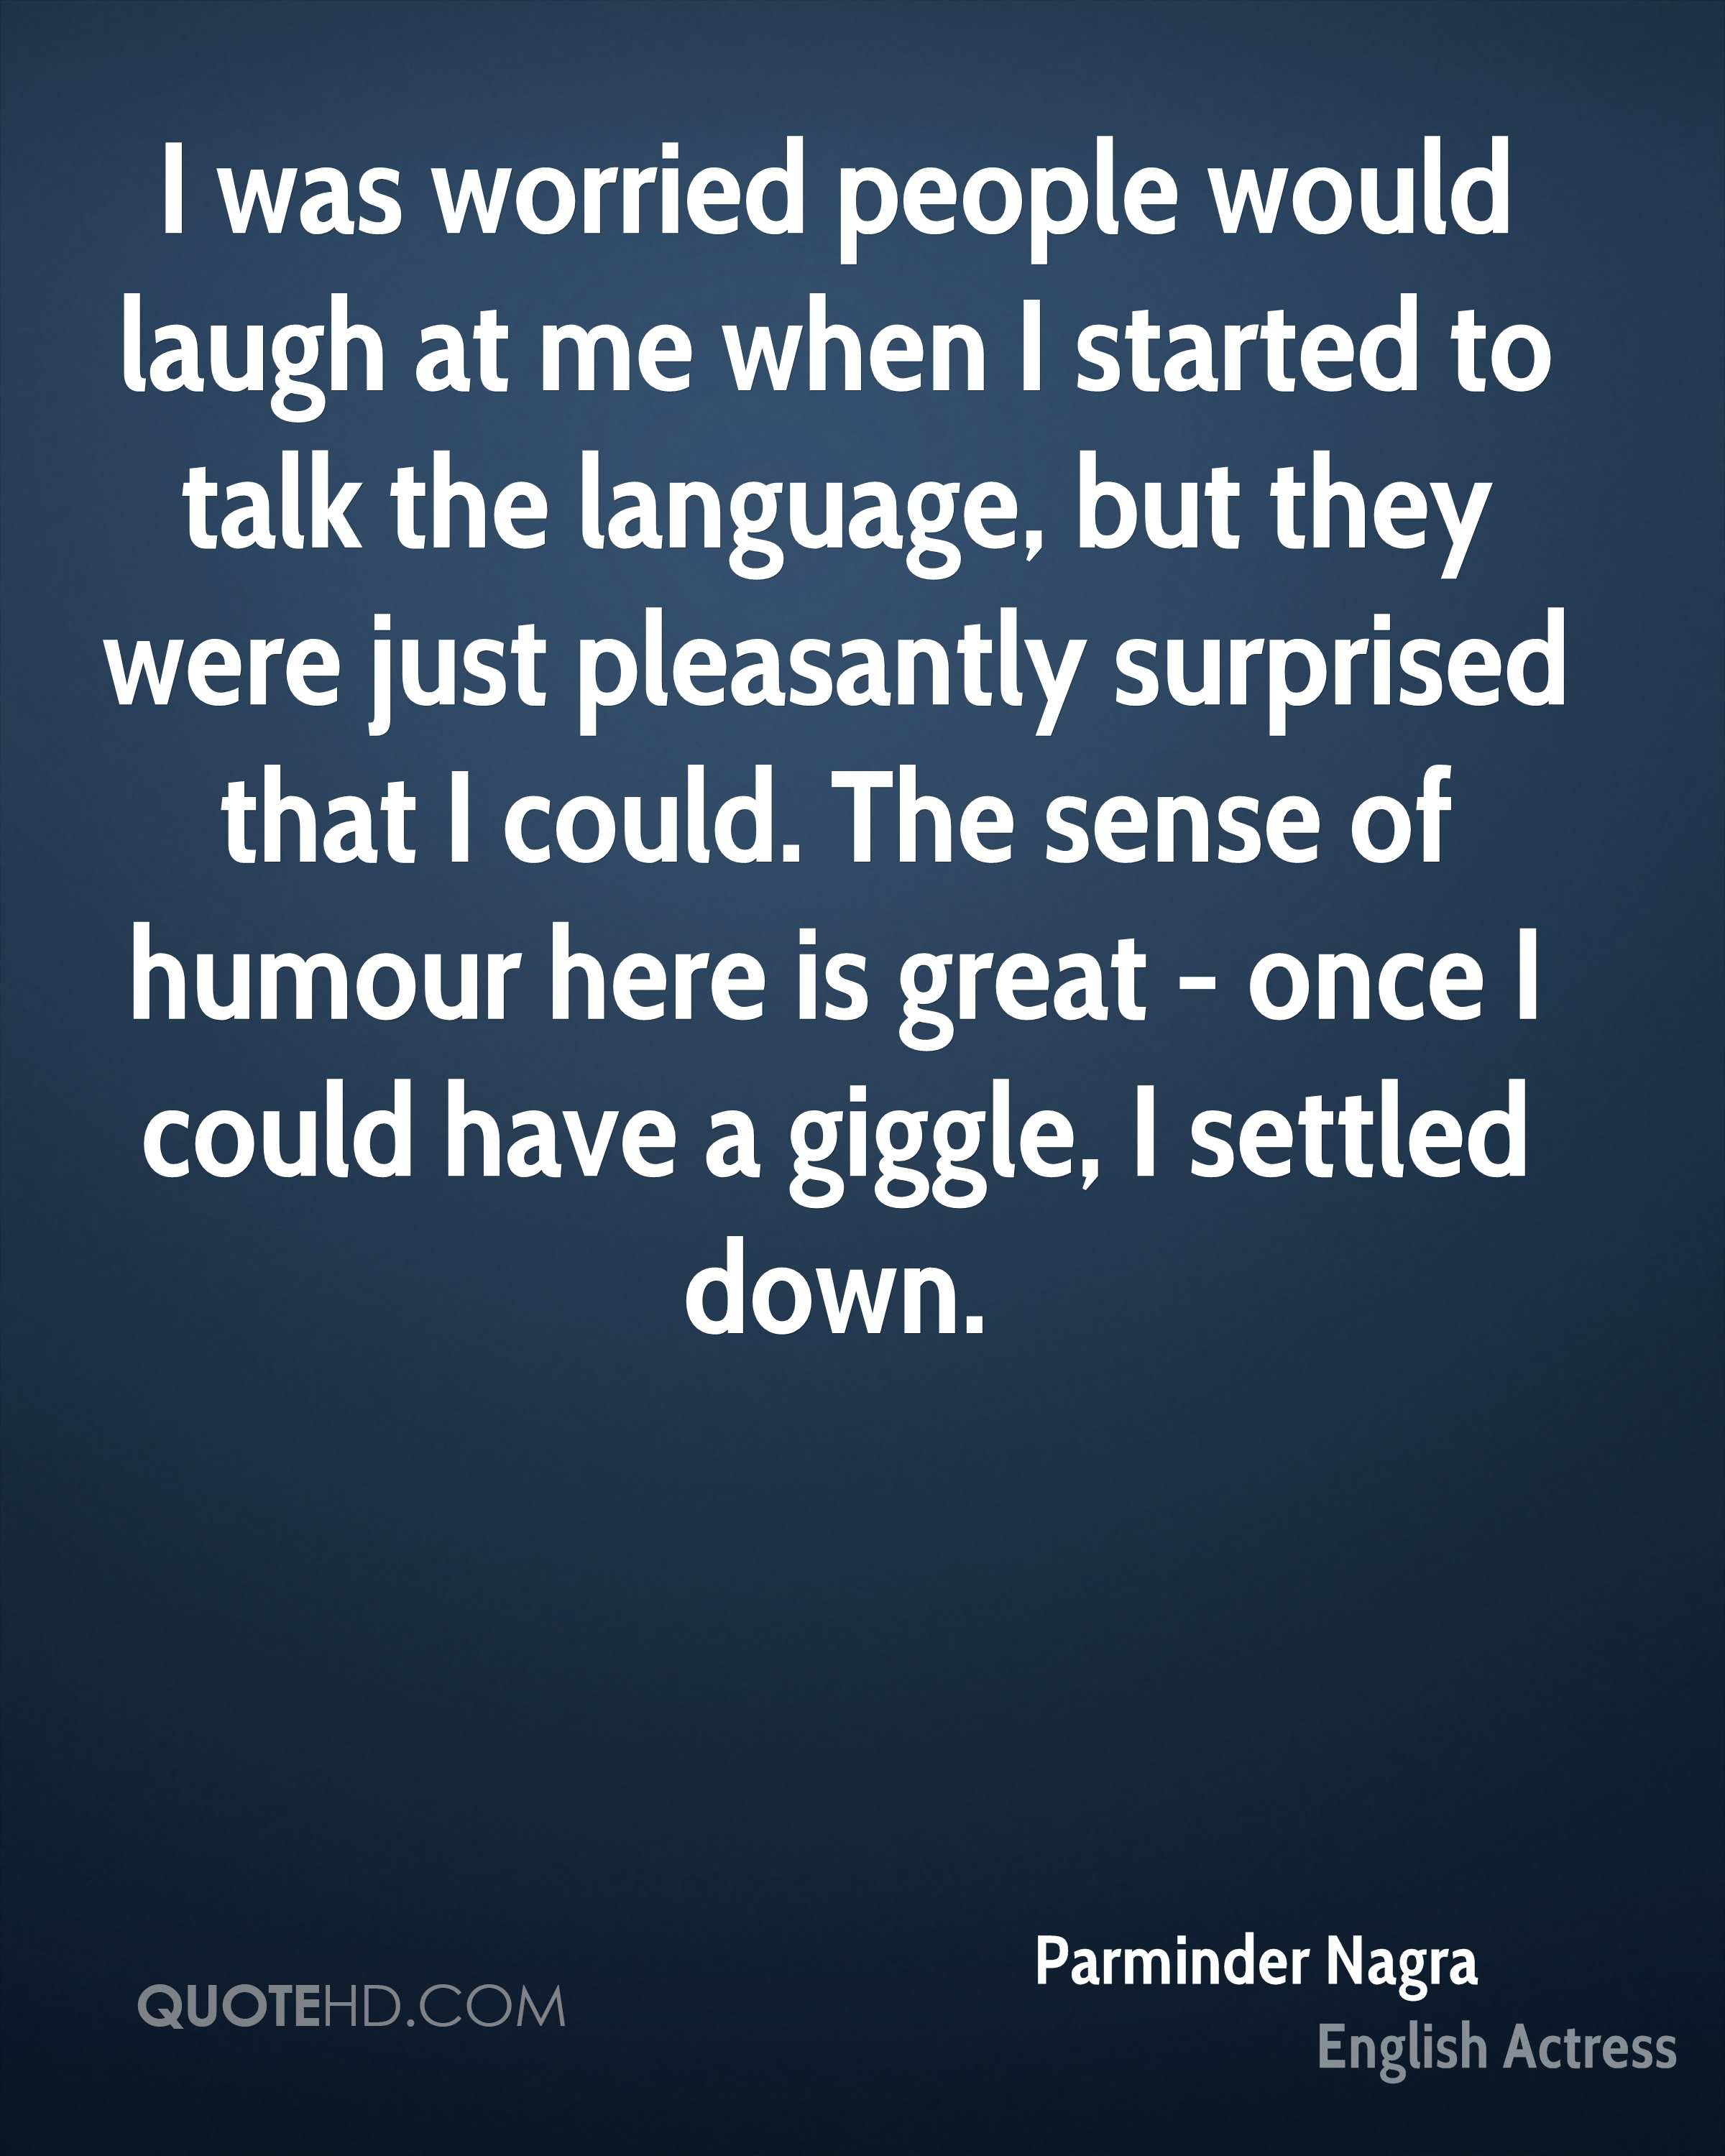 I was worried people would laugh at me when I started to talk the language, but they were just pleasantly surprised that I could. The sense of humour here is great - once I could have a giggle, I settled down.